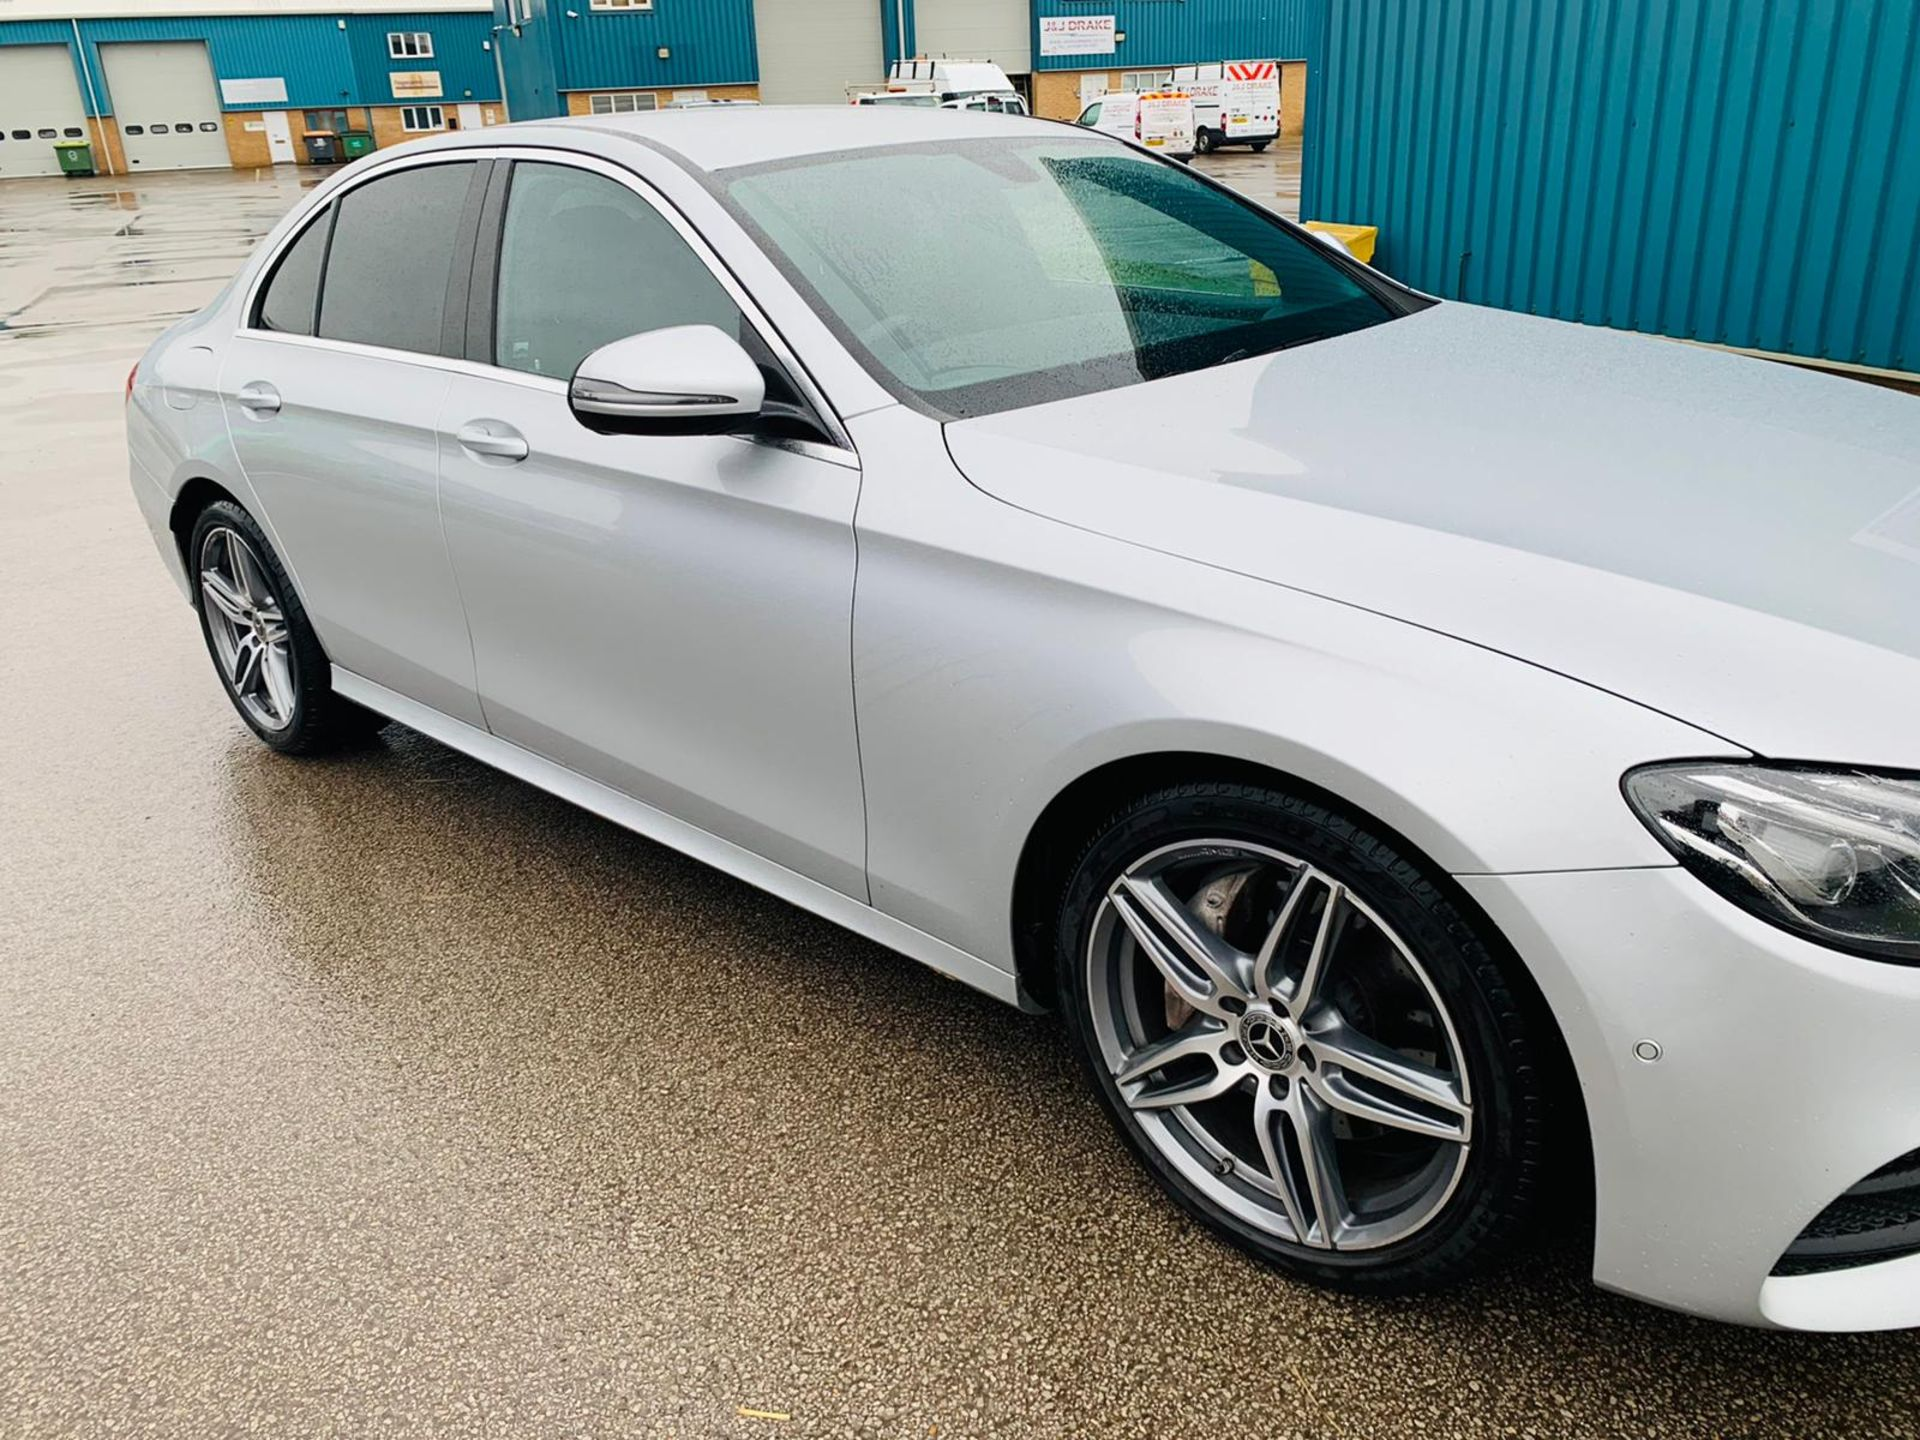 (Reserve Met)Mercedes E220d AMG Line Auto 9G Tronic - 2019 Reg - Reversing Cam - 1 Owner From New - Image 5 of 30